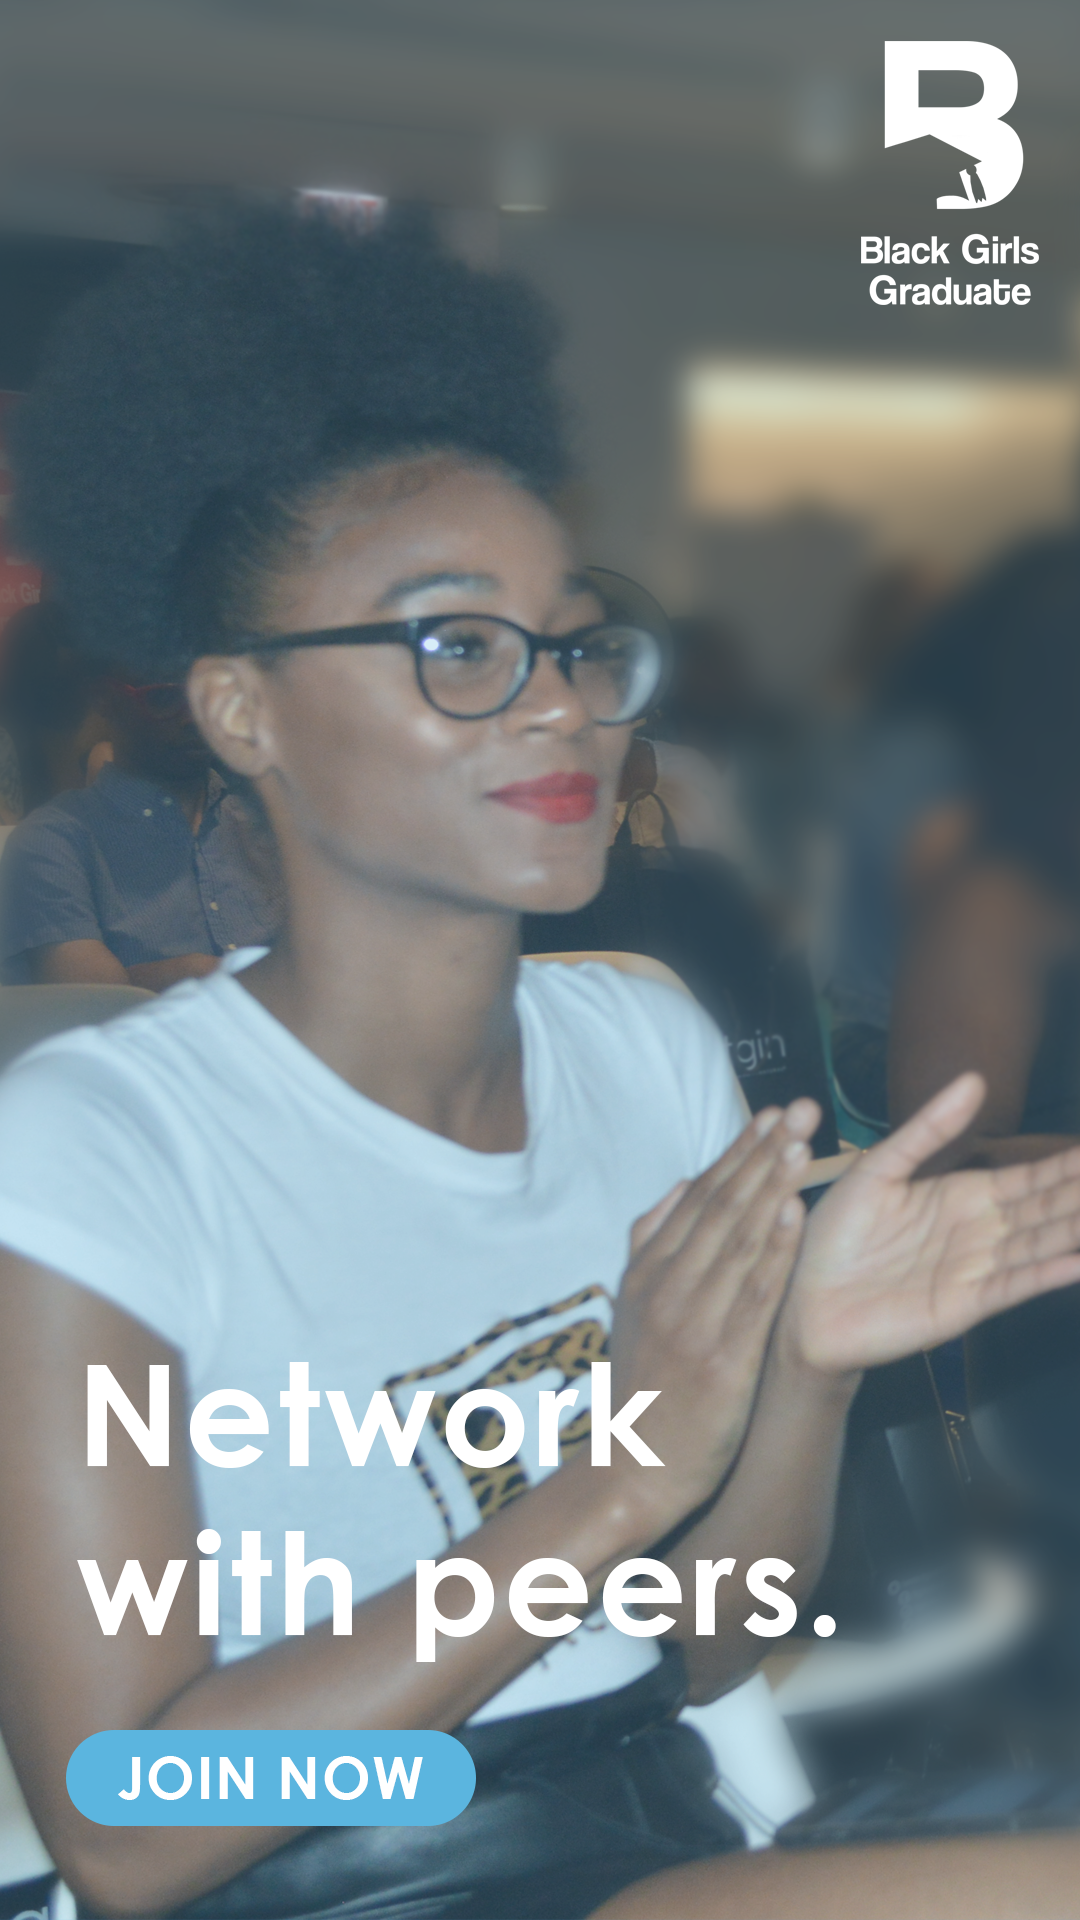 Join the Black Girls Graduate Young Professionals Network